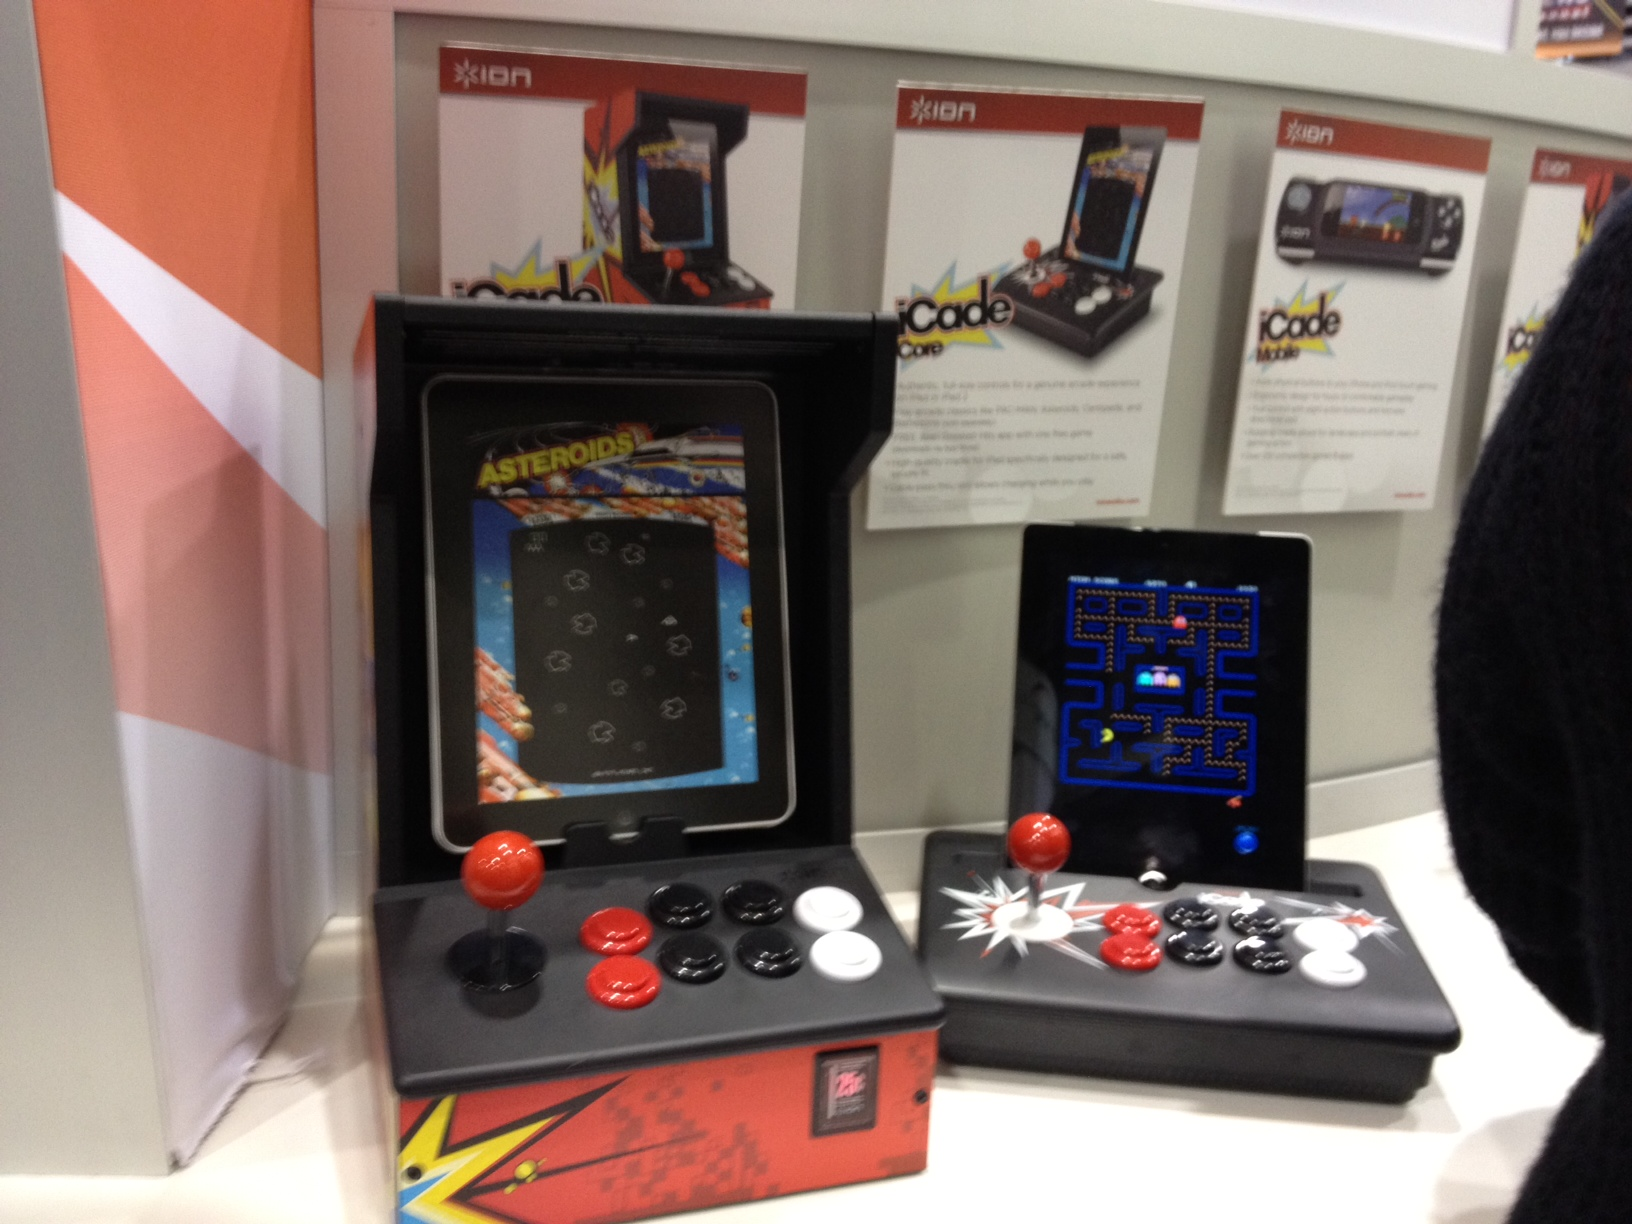 CES 2012: ION's New iCade Product Line Is Impressive